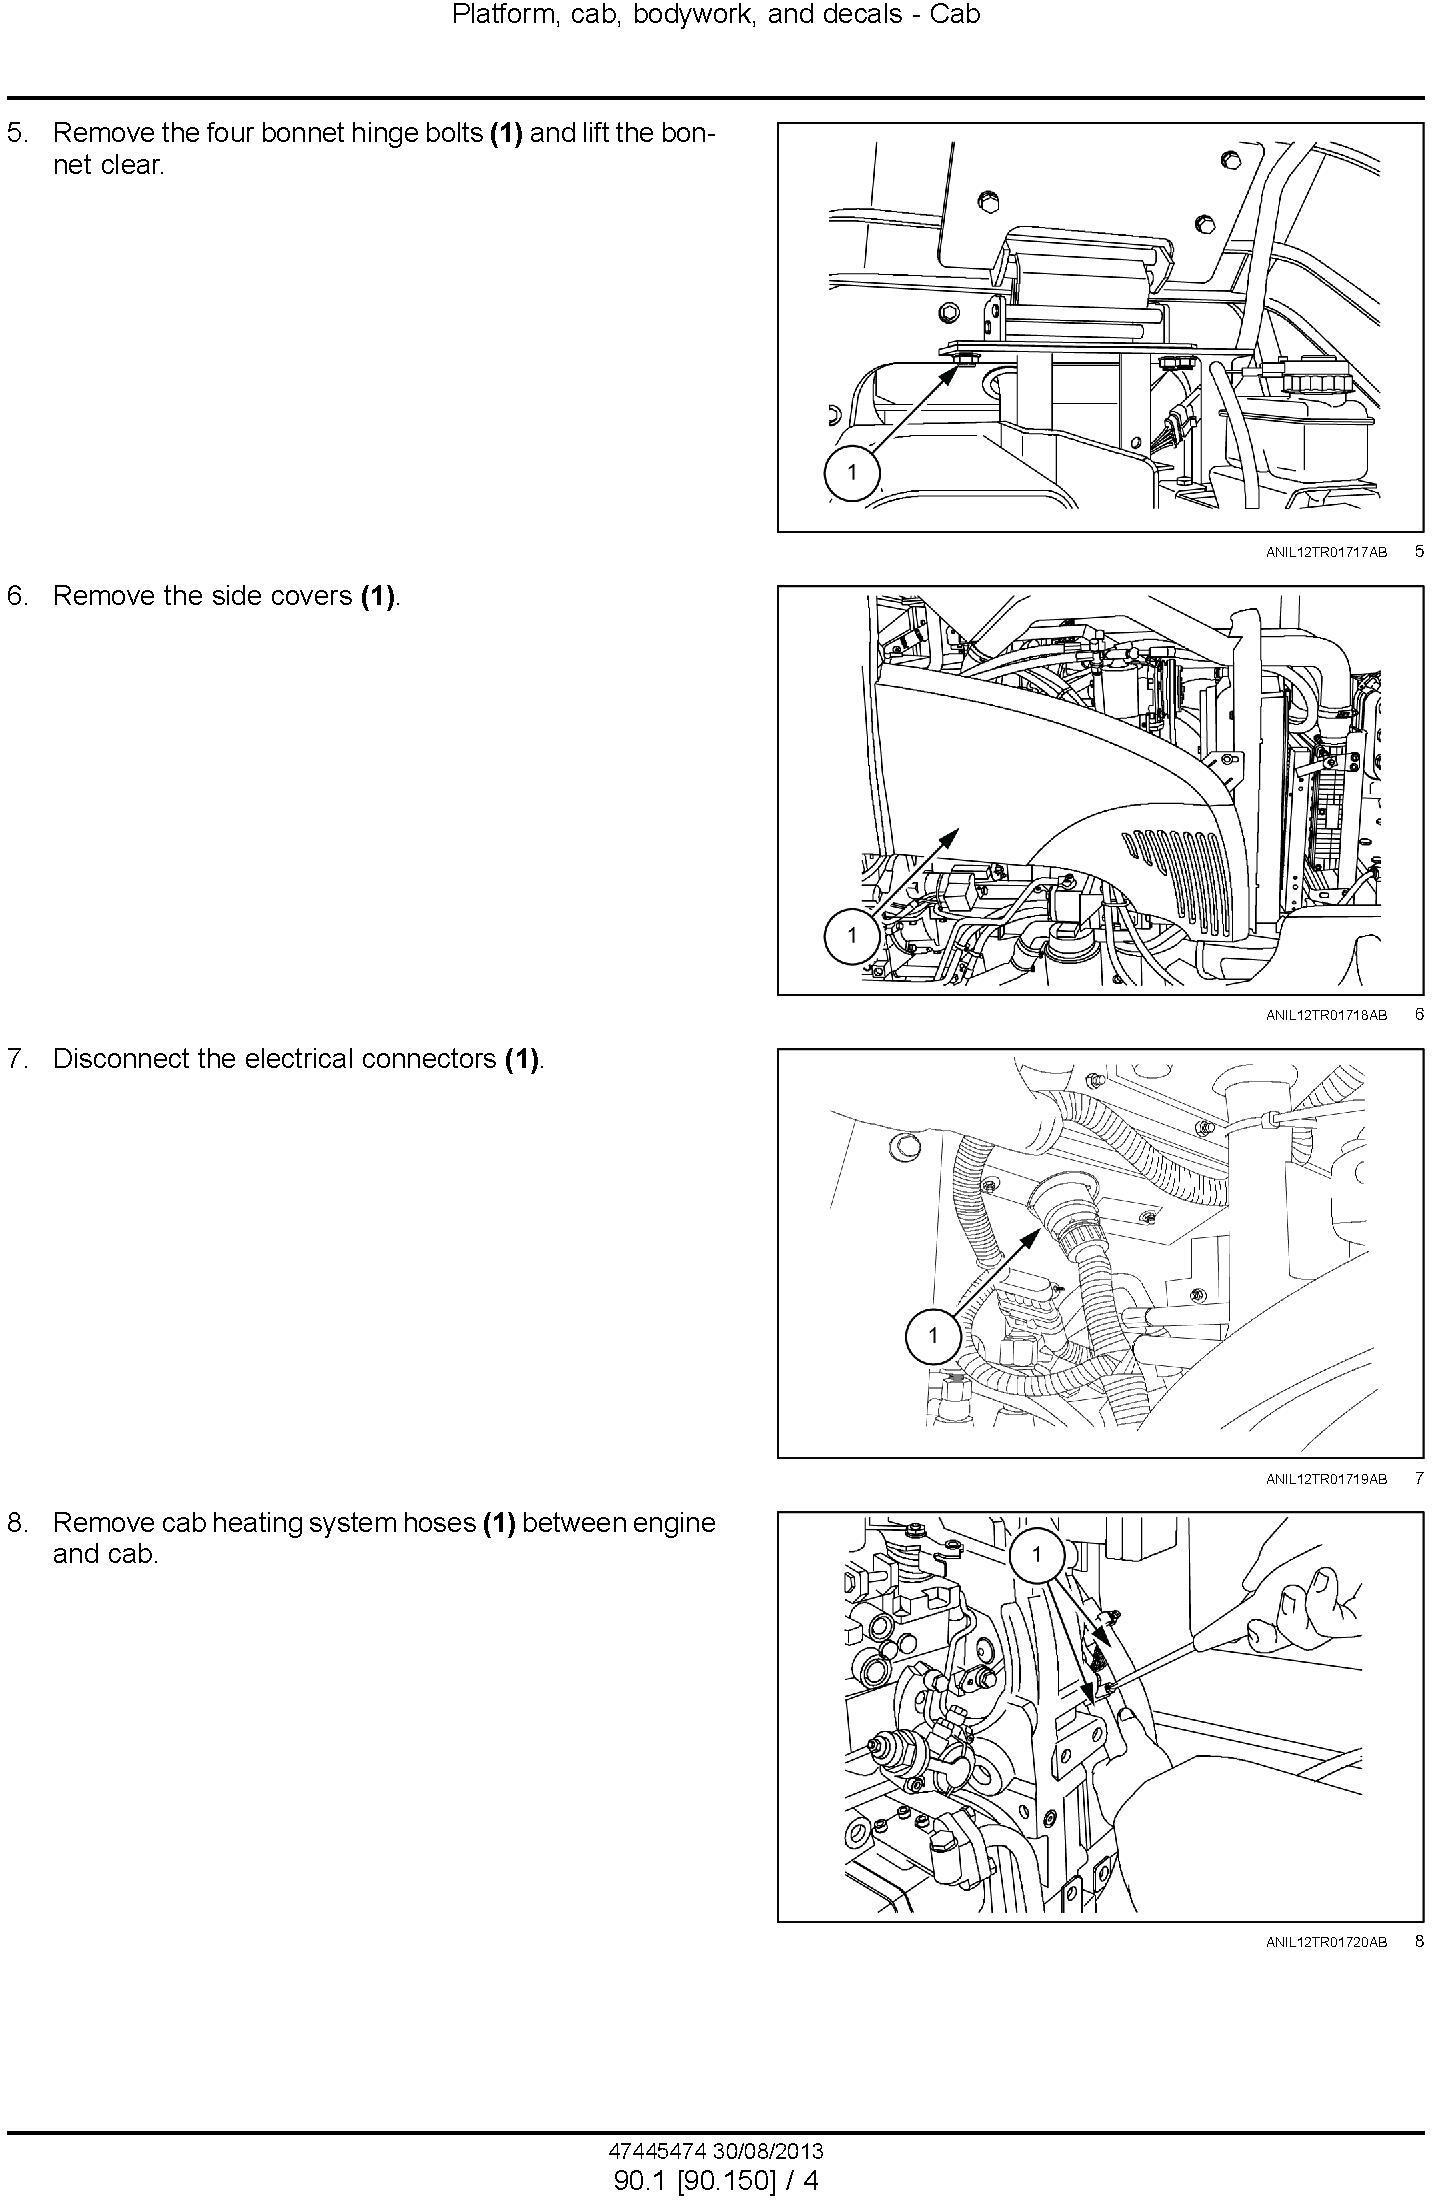 New Holland TD5.65, TD5.75, TD5.85, TD5.95, TD5.105, TD5.115 Tractor Service Manual - 3